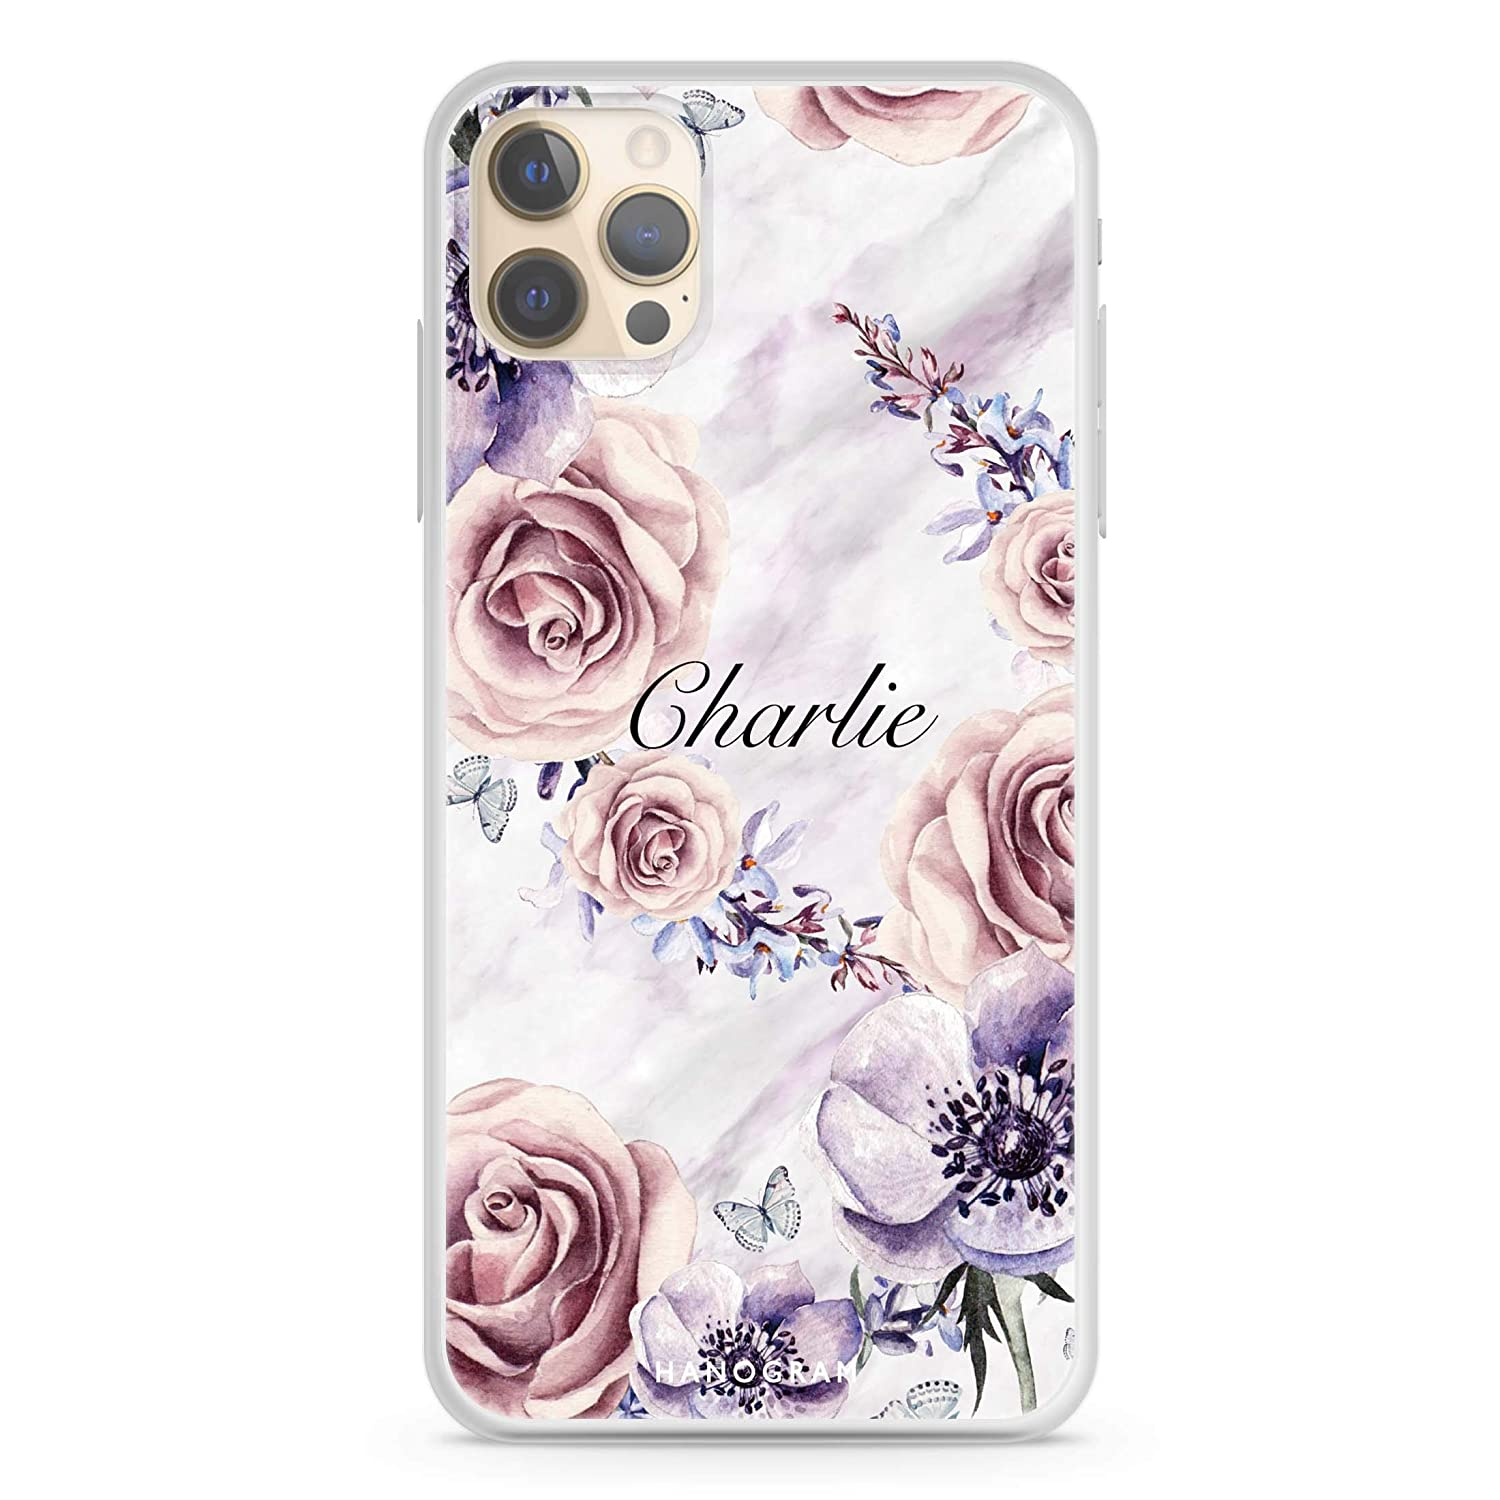 White Marble Flower iPhone 12 Pro Max 50% OFF Soft Case Regular store Clear Max